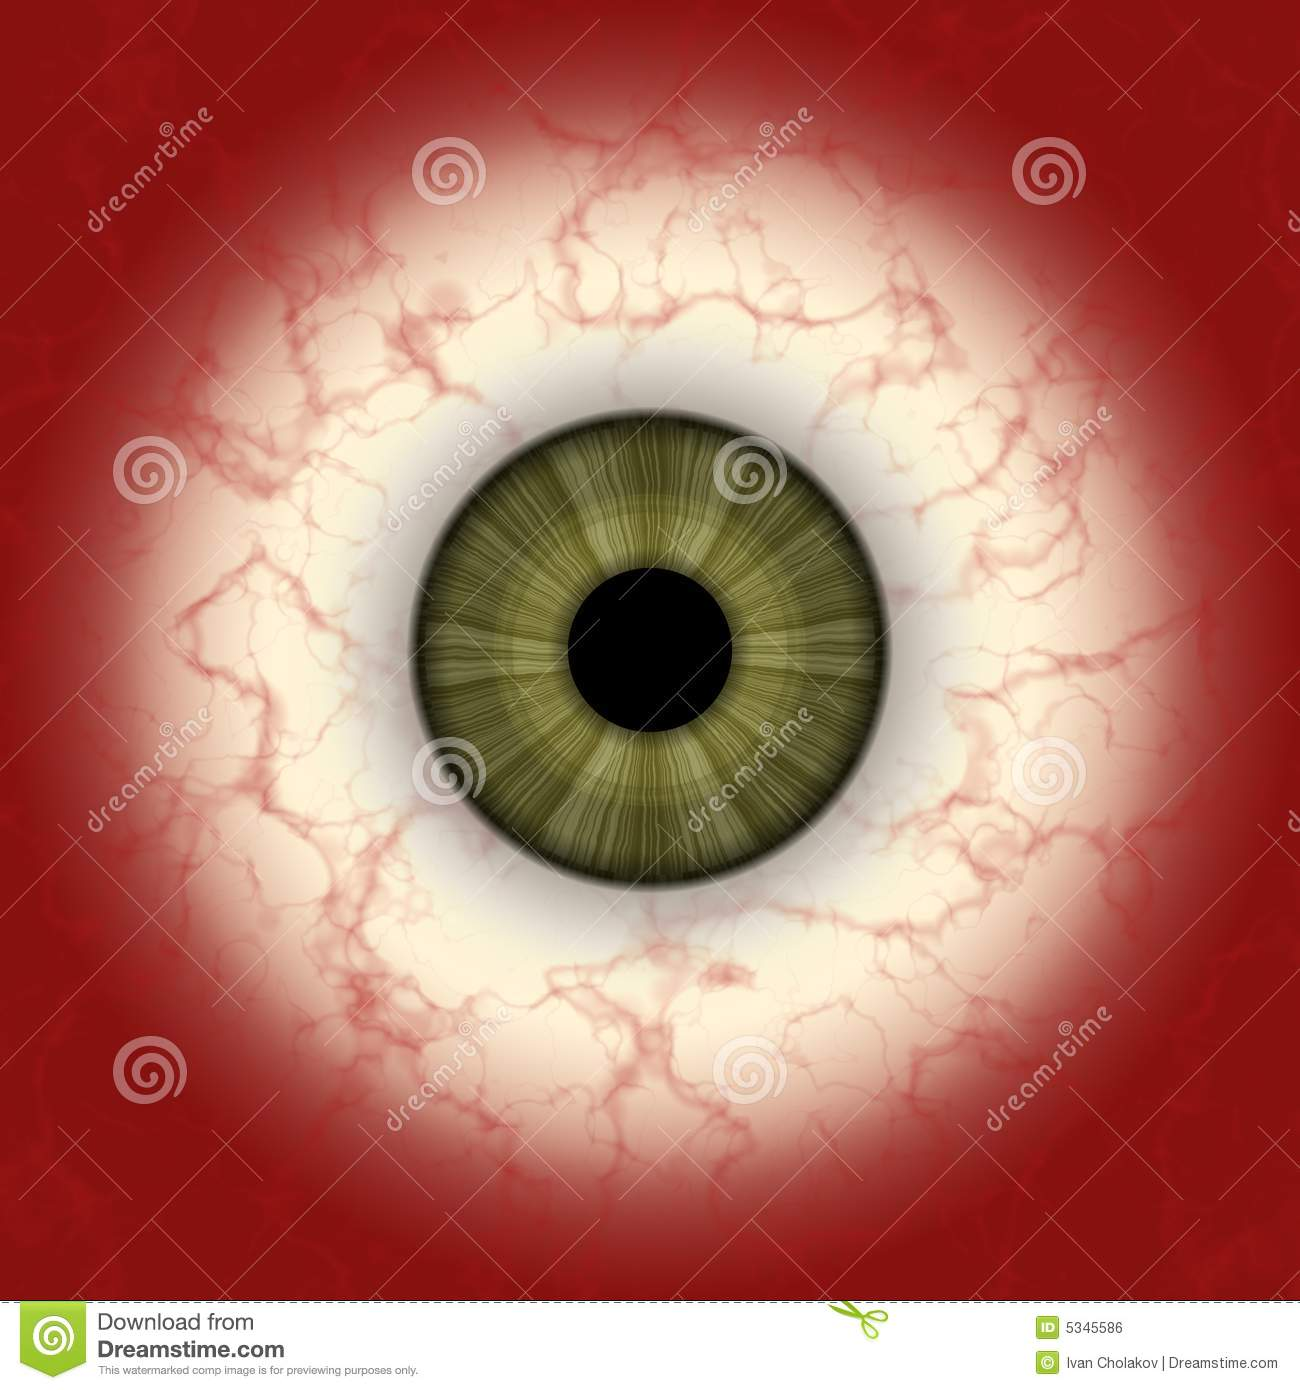 Maxresdefault as well Spherical Mirror besides A C C Ce D B Acd likewise Retina besides Tapetum. on human eye diagram